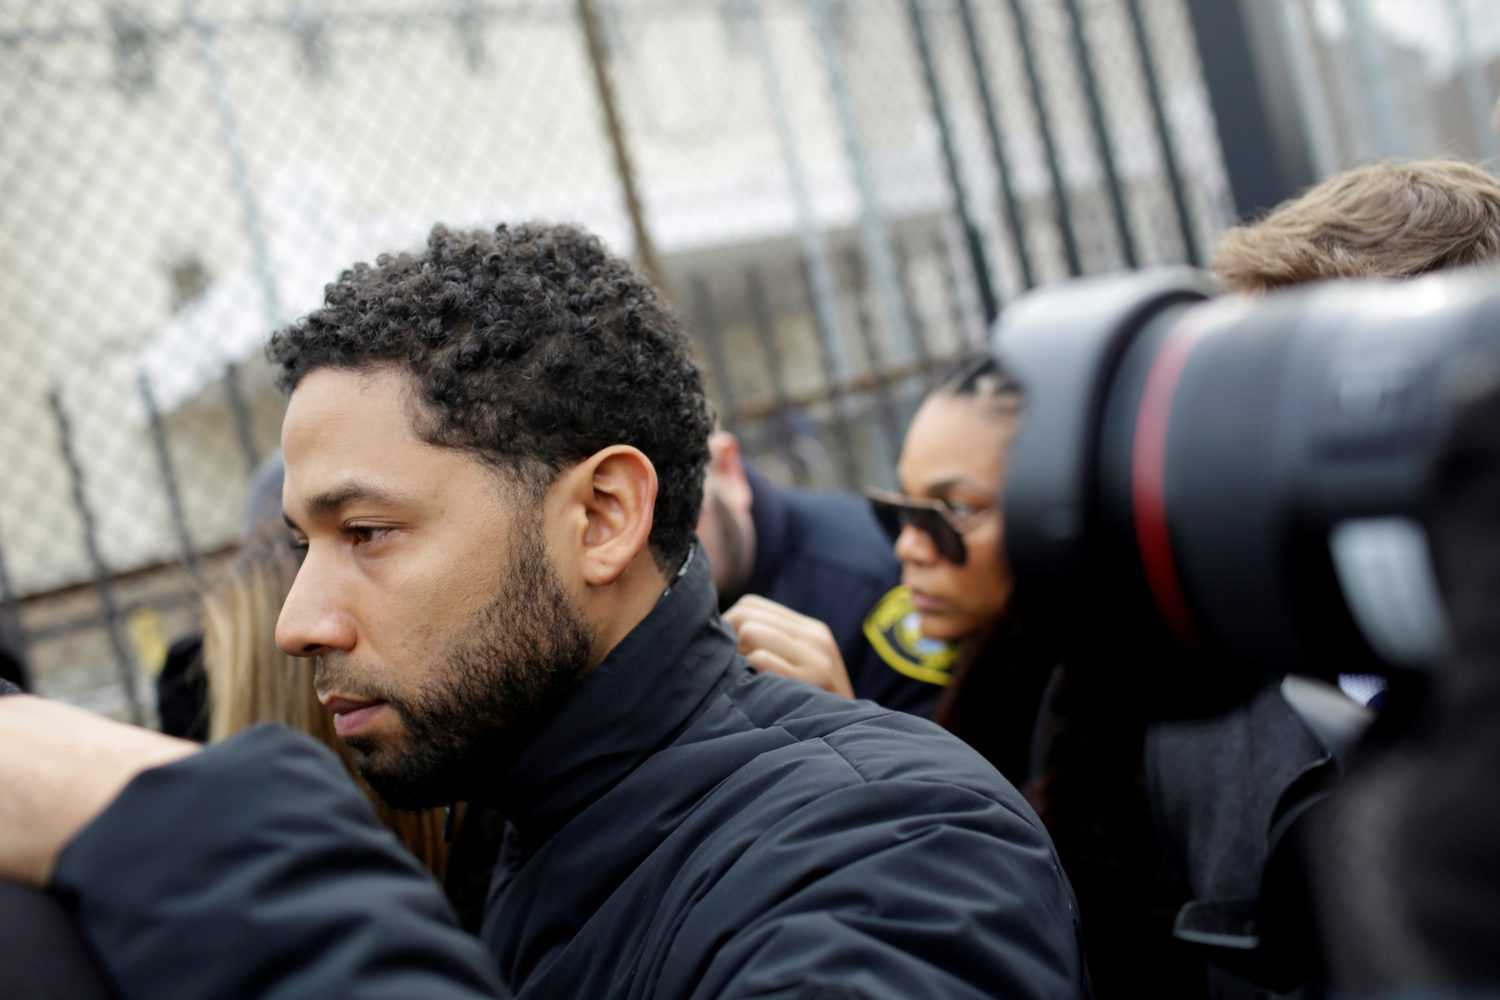 FILE PHOTO: Jussie Smollett exits Cook County Department of Corrections after posting bail in Chicago, Illinois, U.S., February 21, 2019. REUTERS/Joshua Lott